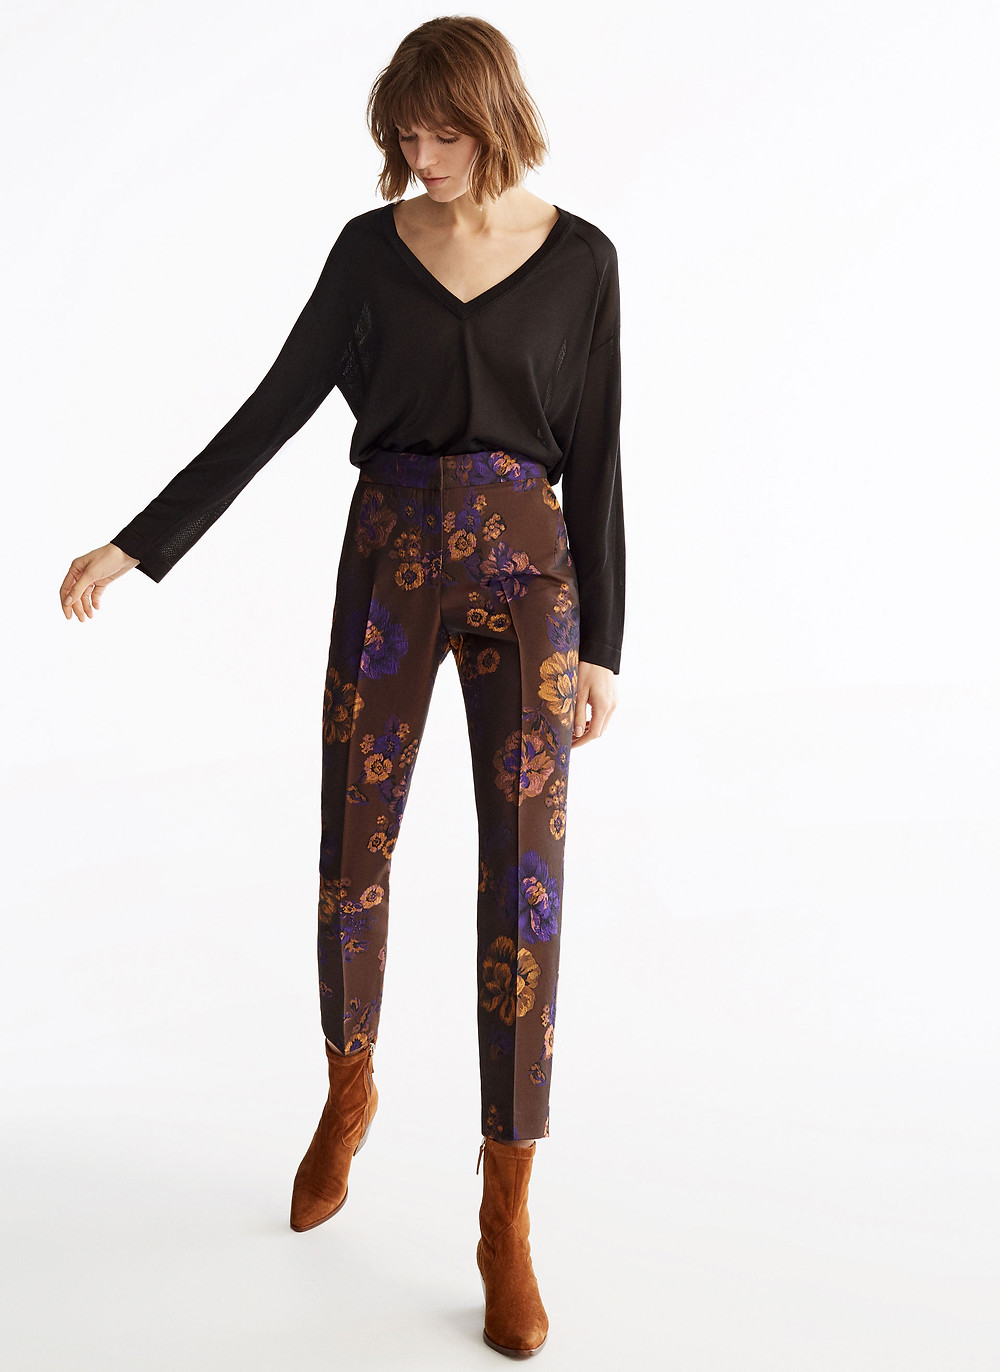 Jacquard trousers, floral effect, Uterque (€62,30)